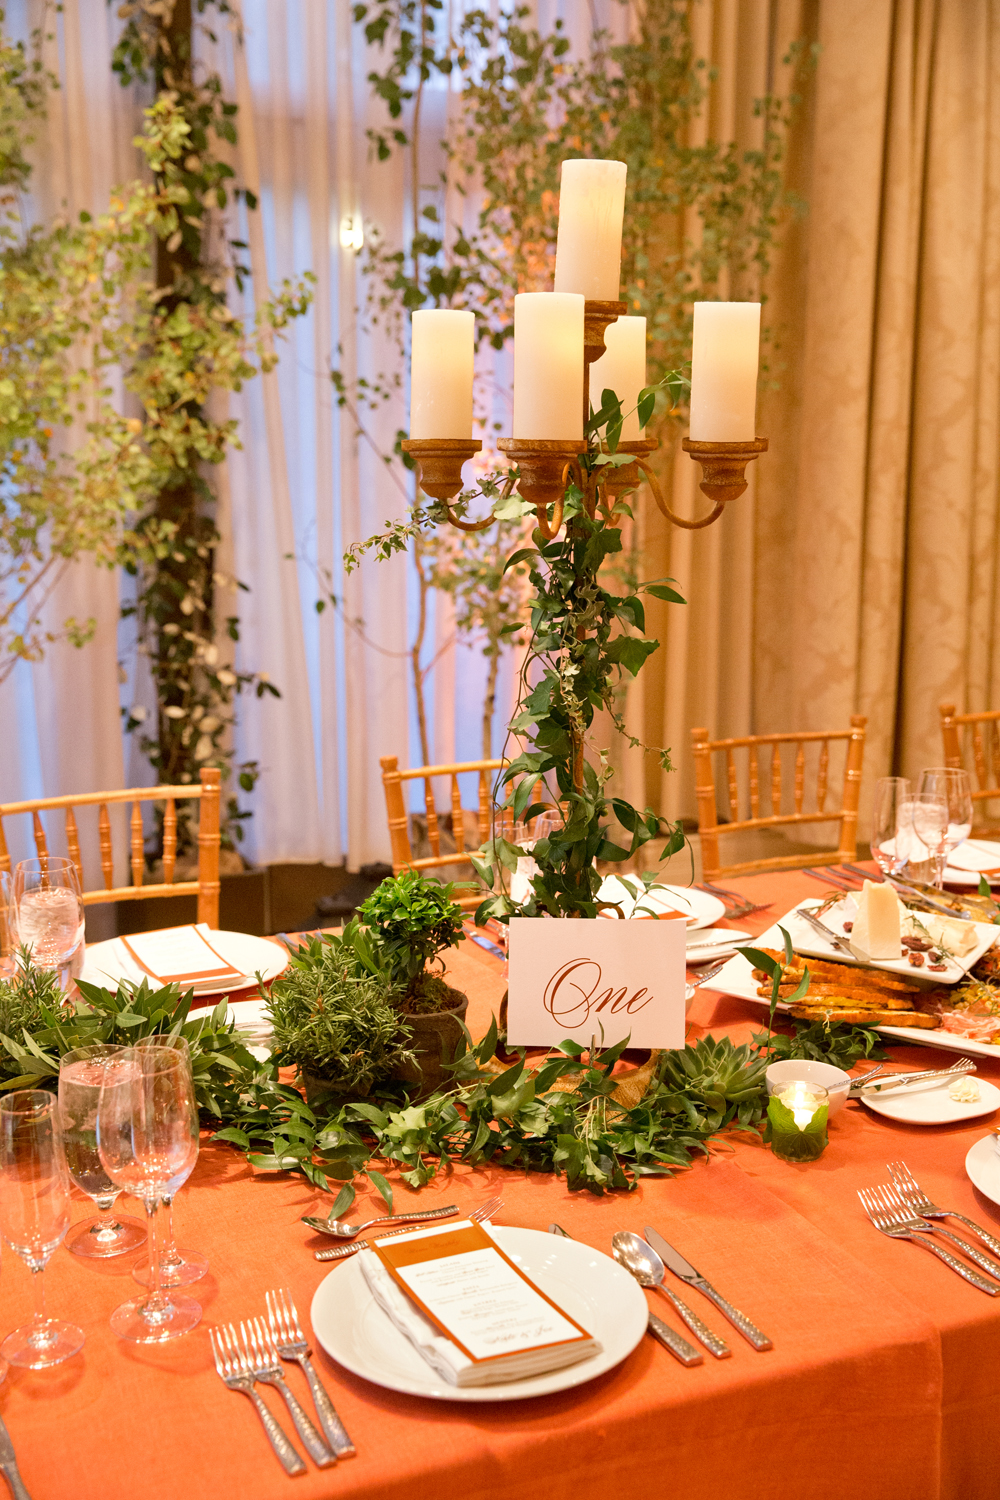 Orange and green dinner table setting